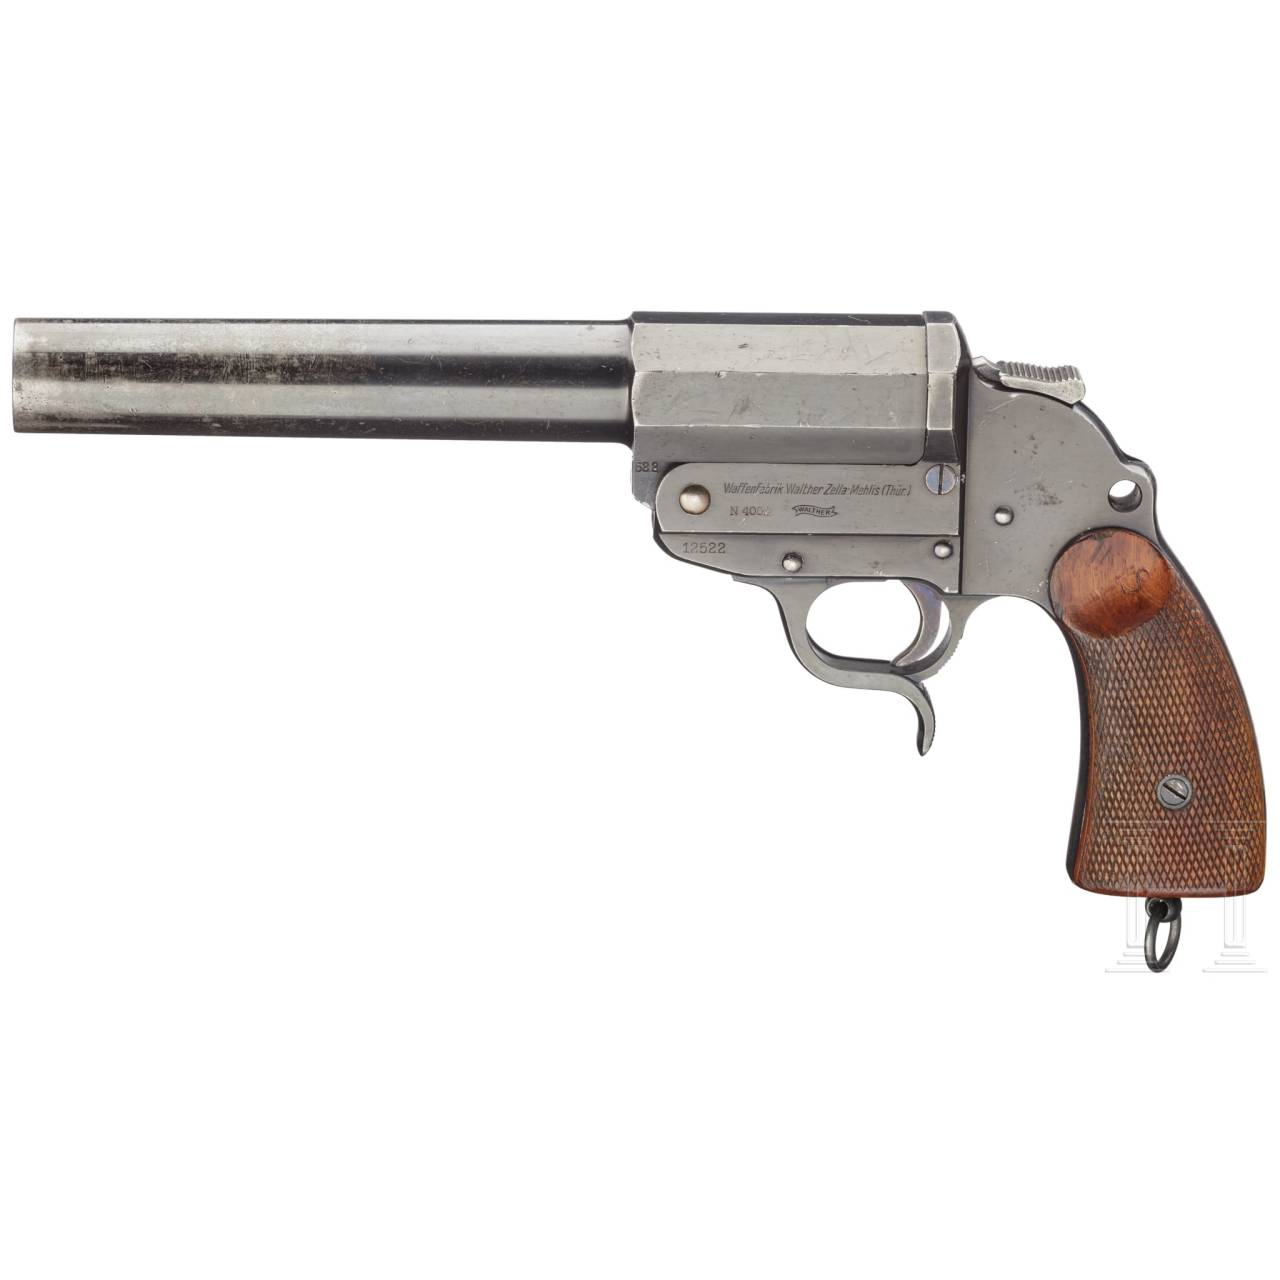 A Walther long-barreled flare gun (Army Model)